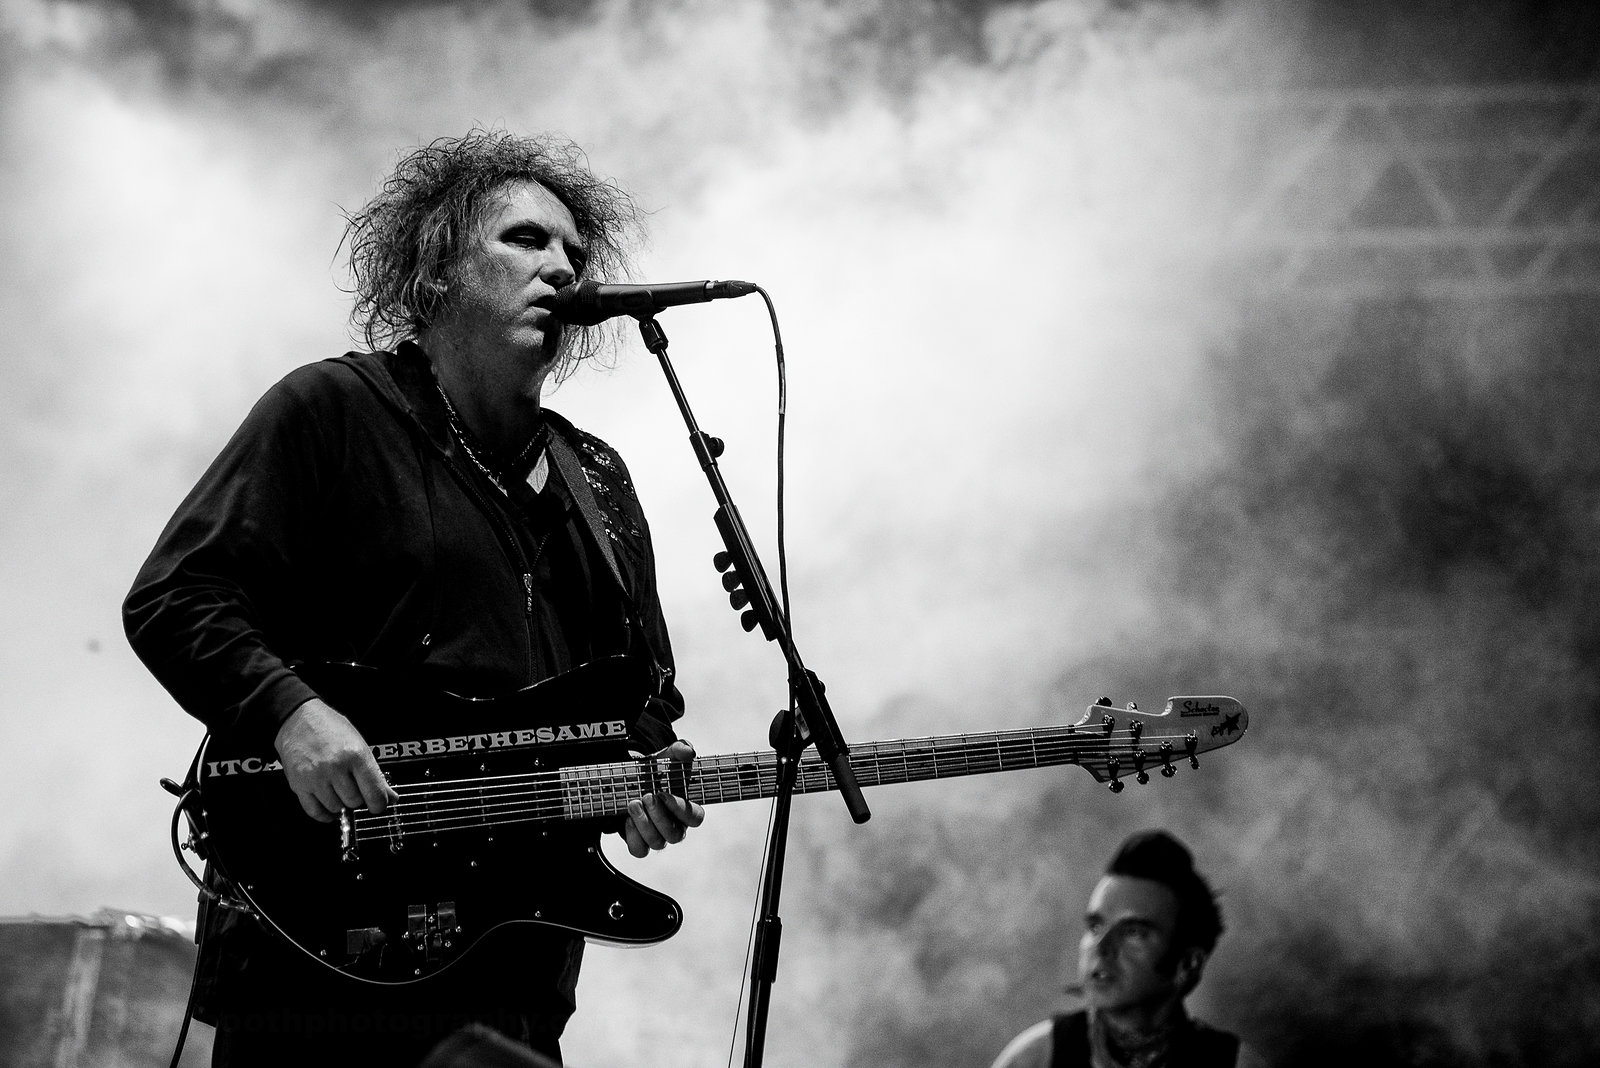 Robert Smith - The Cure - SITG 2016